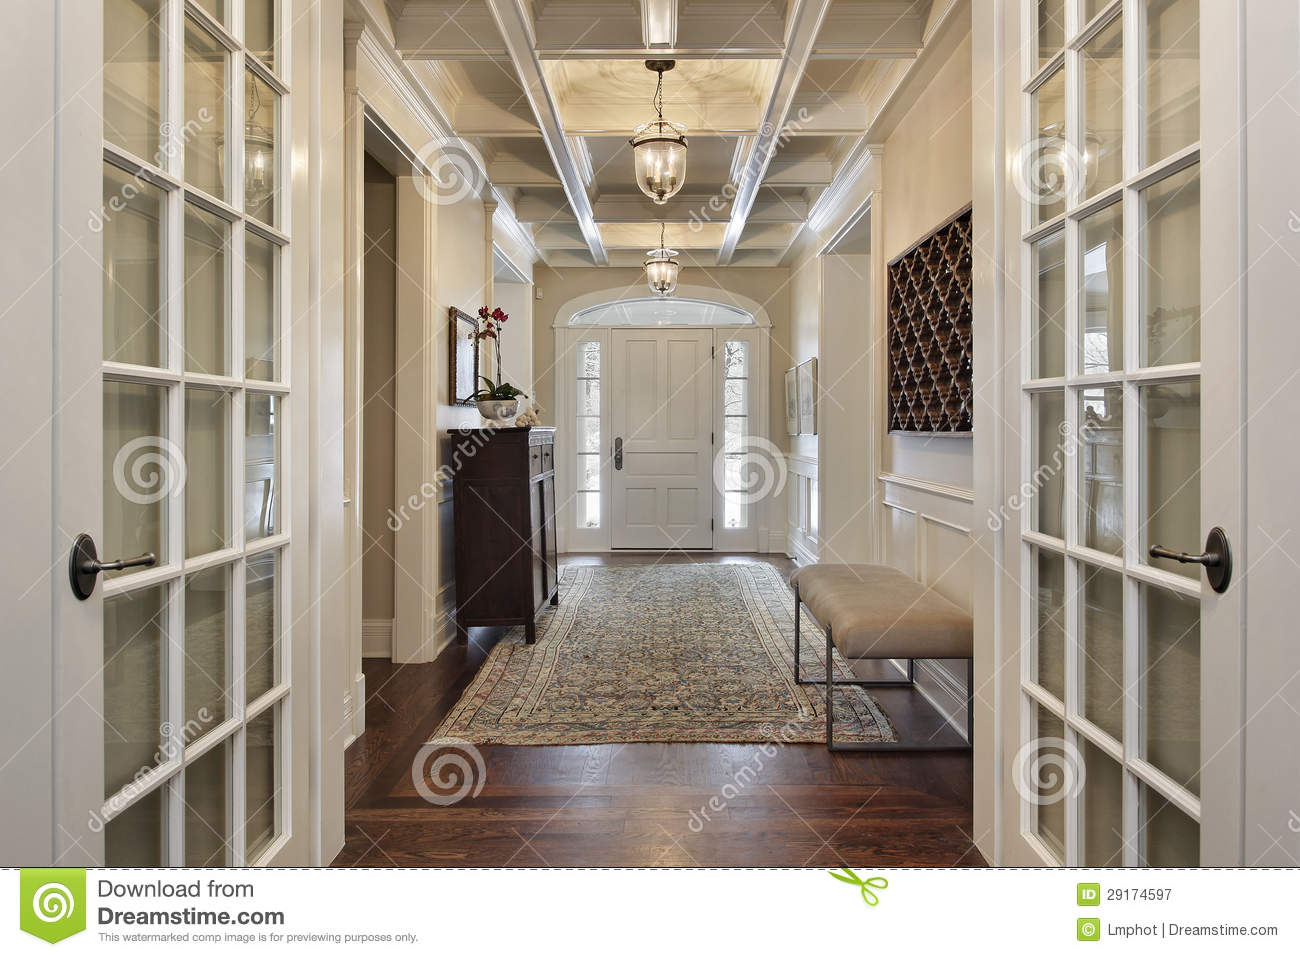 Foyer Clipart : Foyer with french doors royalty free stock photography